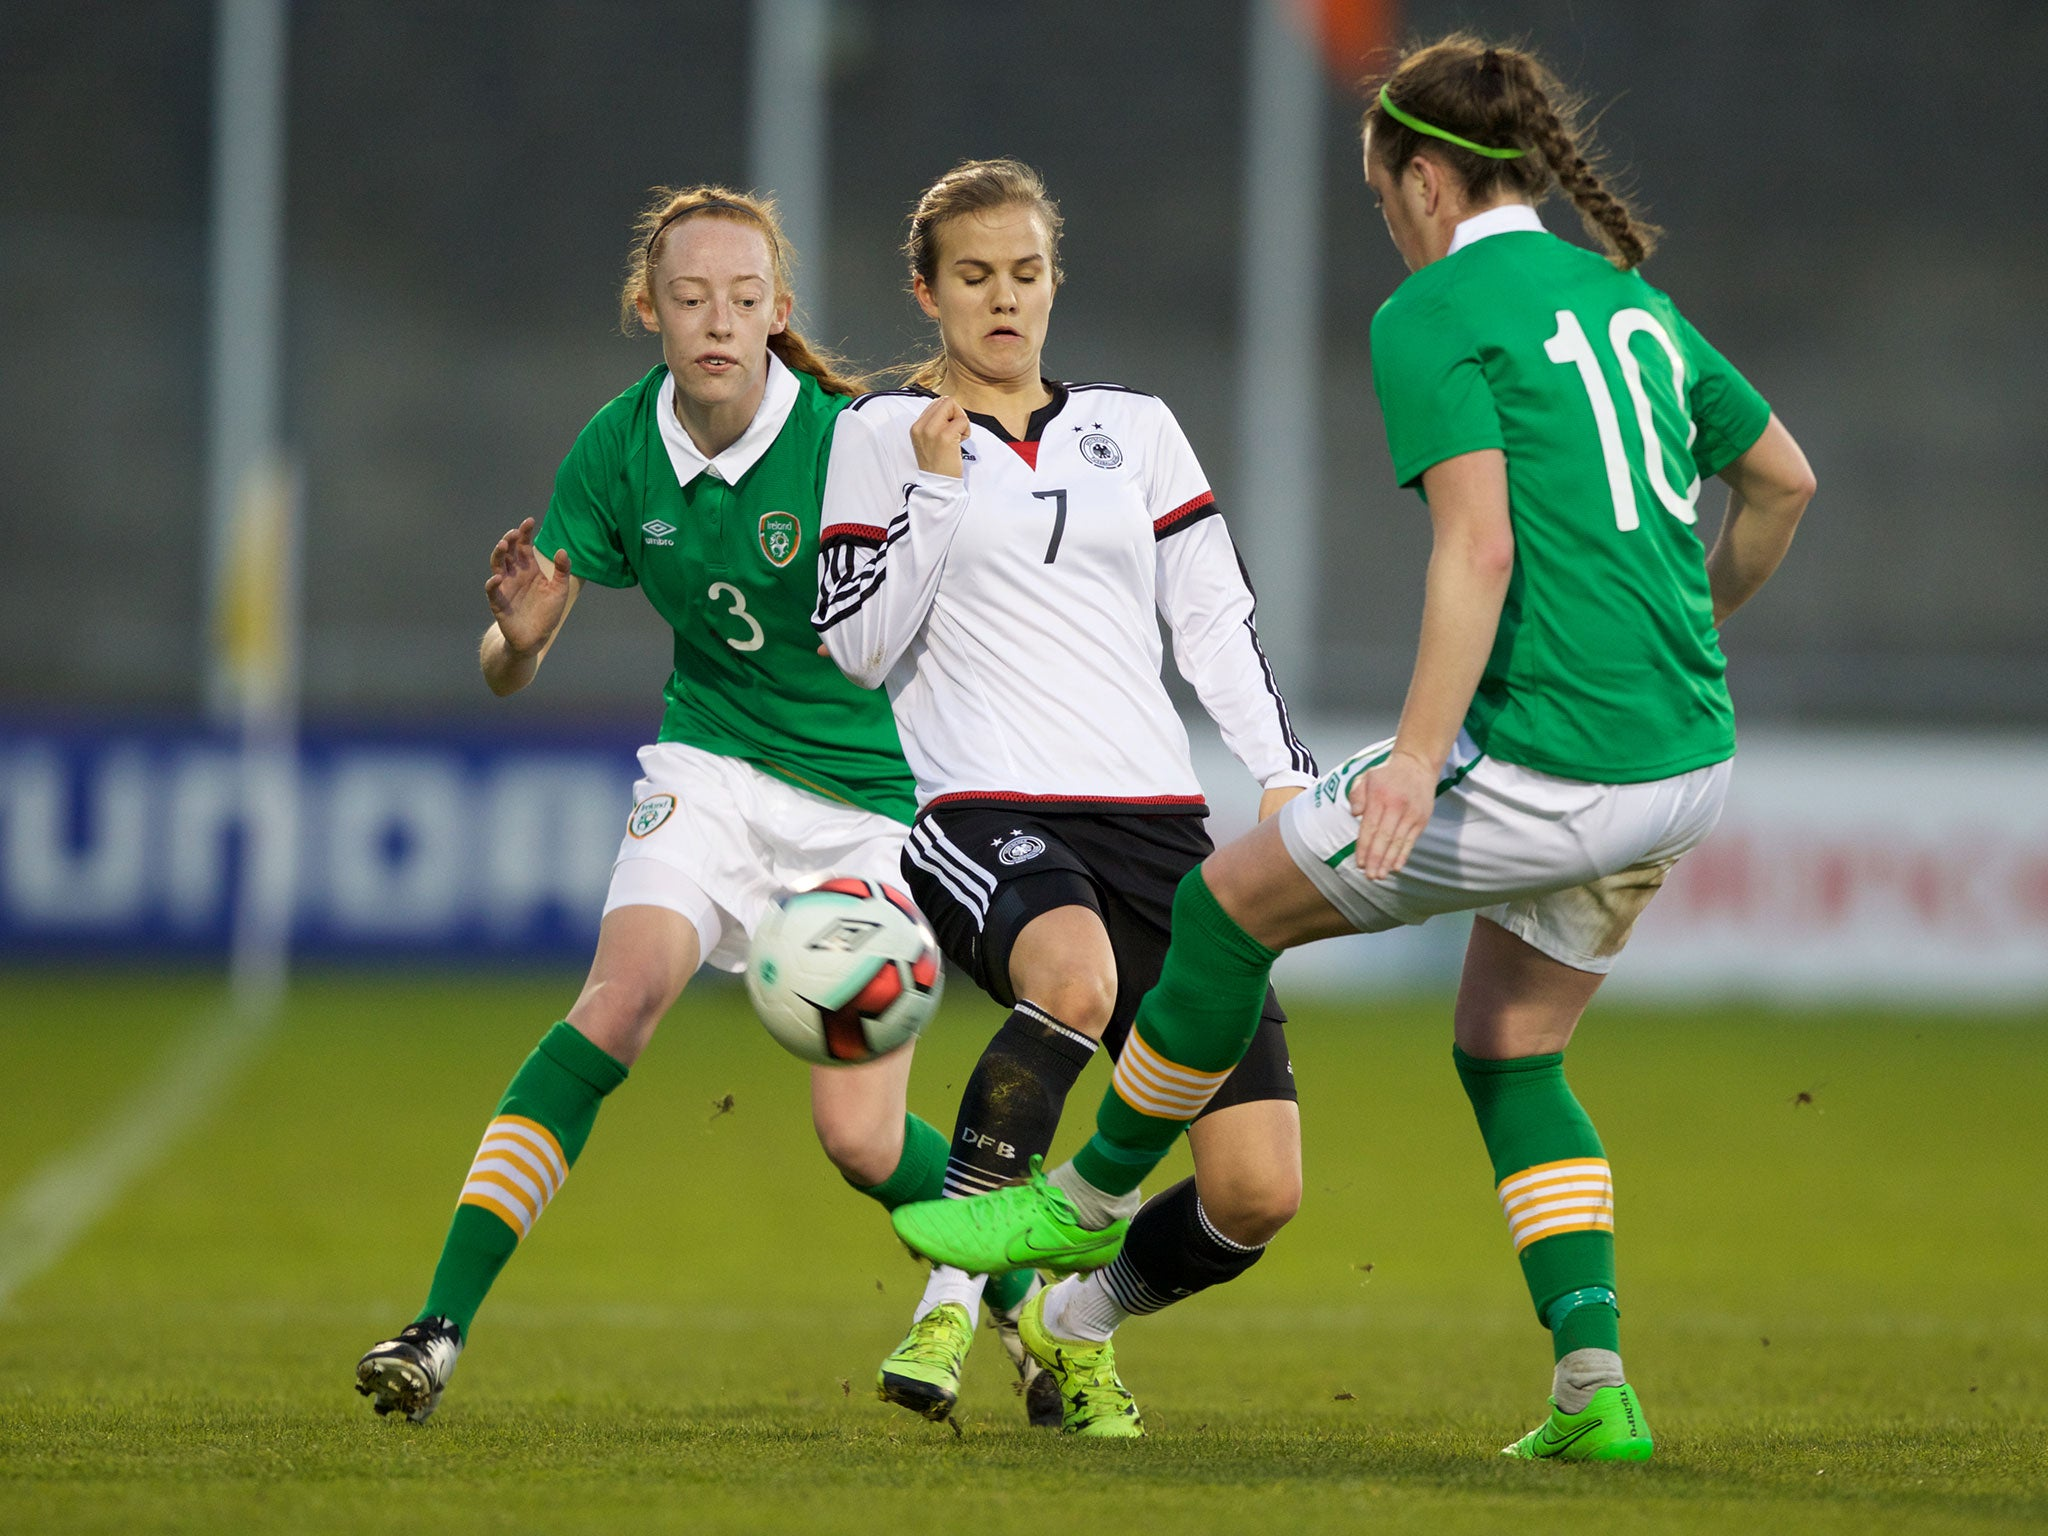 Republic of Ireland women's team threaten to go on strike against 'fifth-class' treatment by FAI